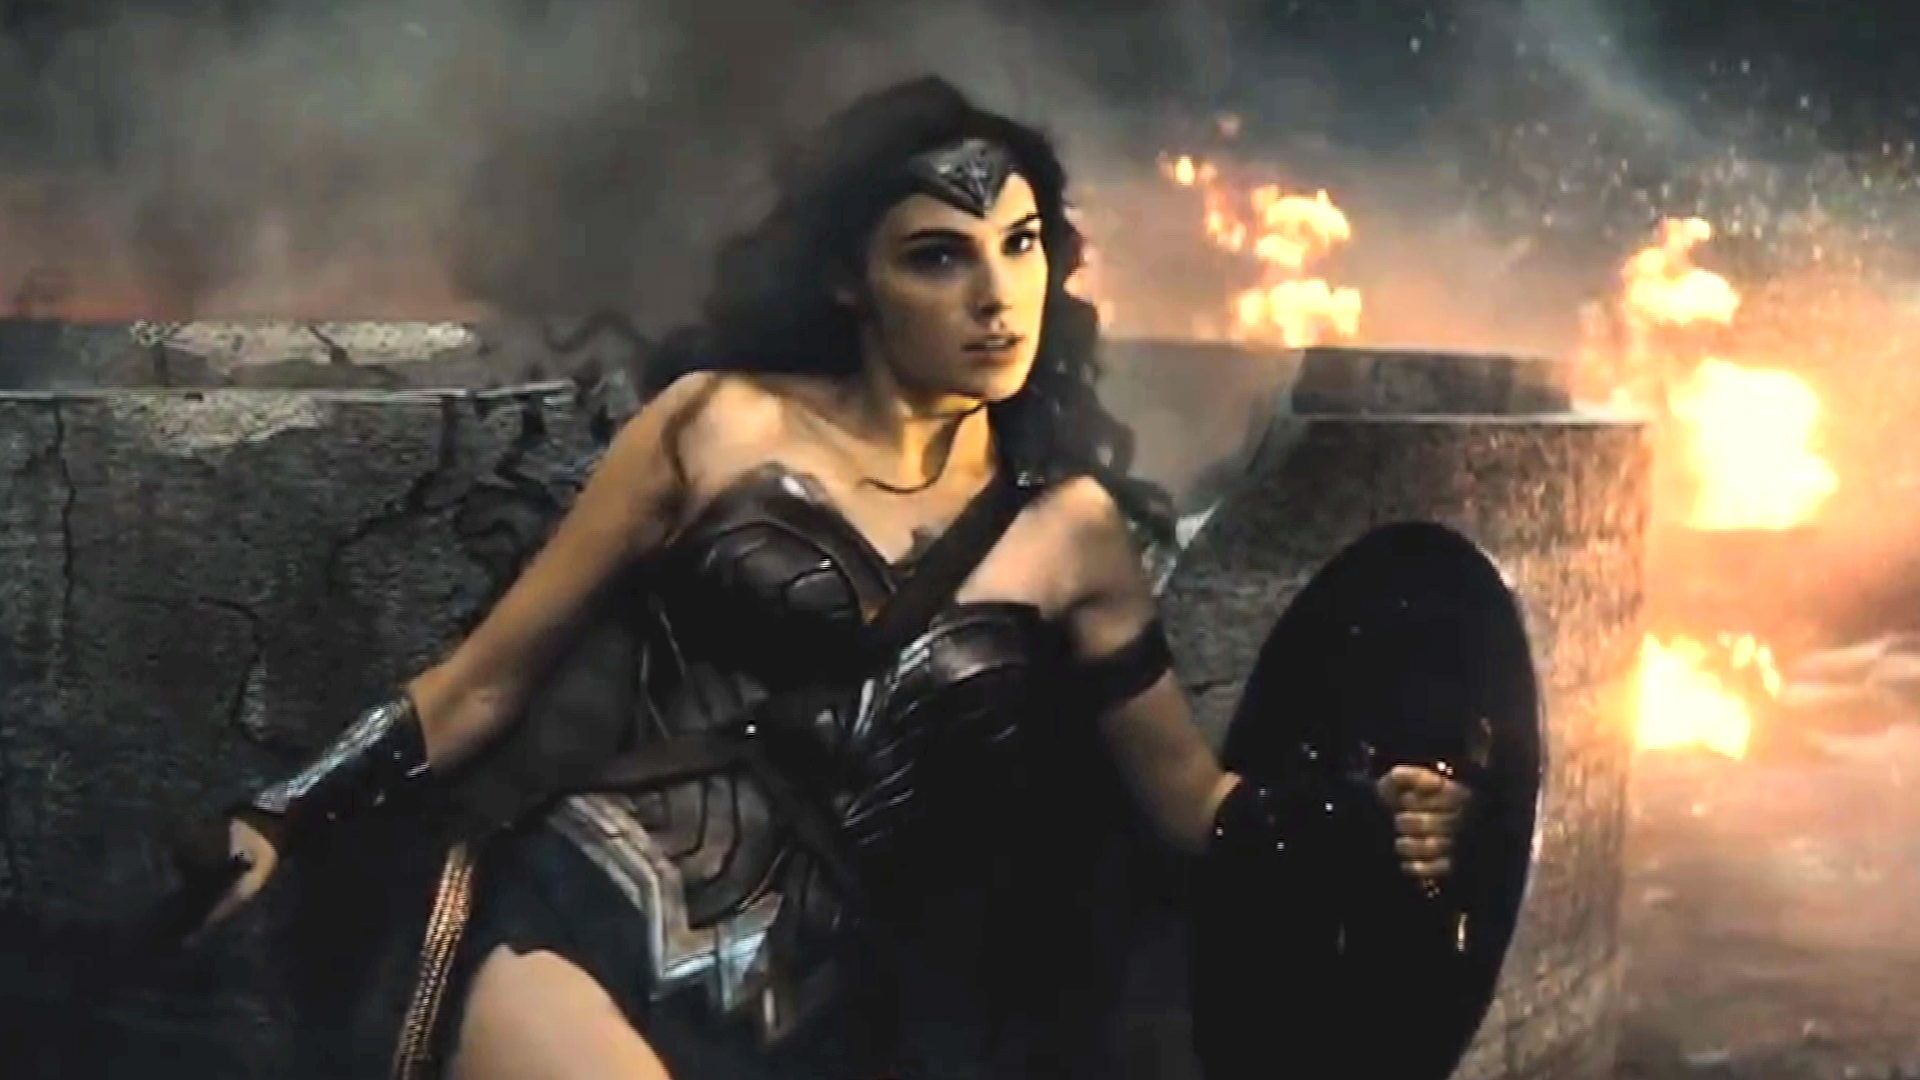 Video: The most anticipated comic book movies of 2016